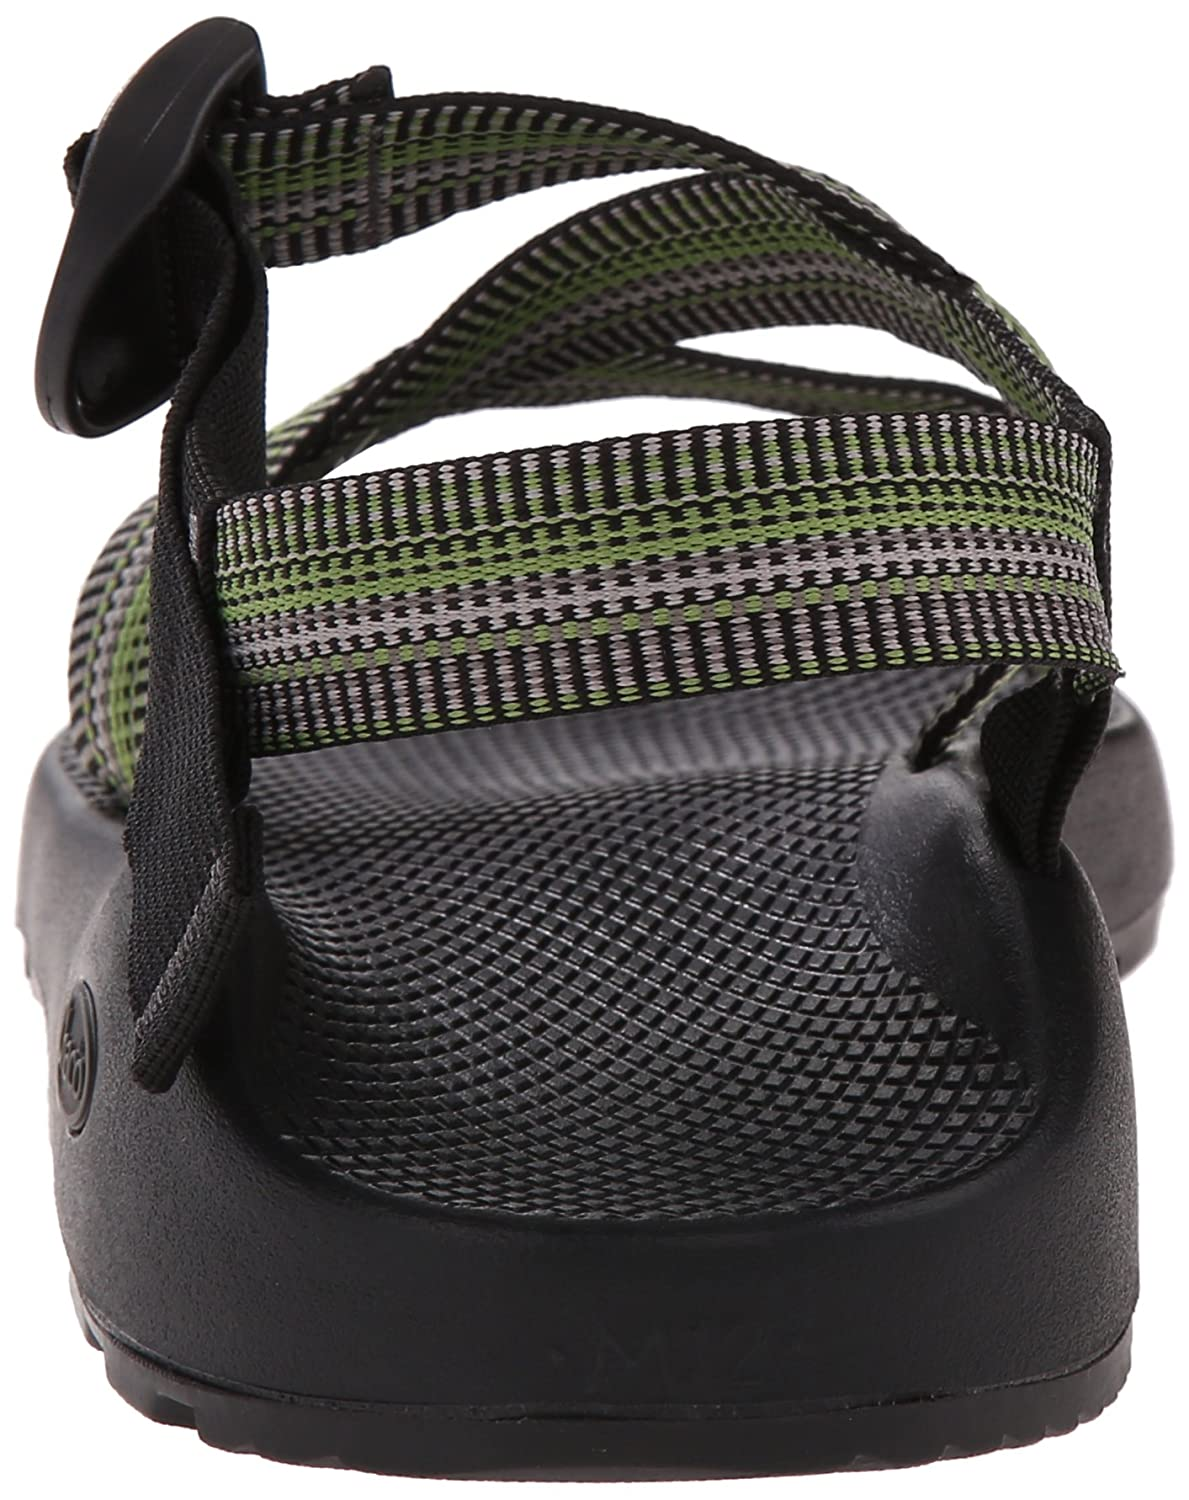 Chaco Sandale Men's Z1 Classic Athletic Sandale Chaco Sawgrass 5b12d2